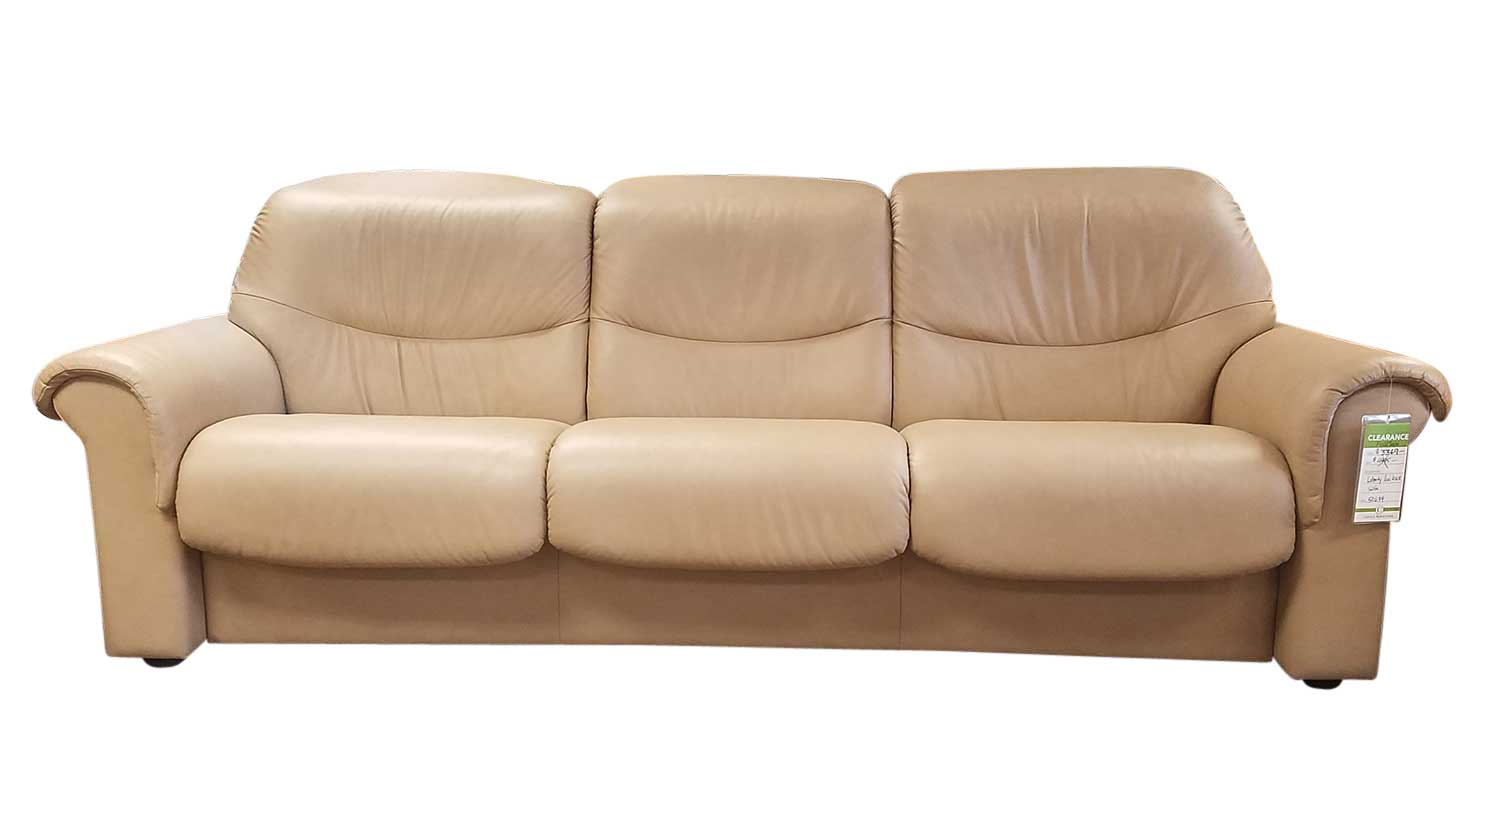 Circle Furniture Liberty Lowback Stressless Sofa In Sand